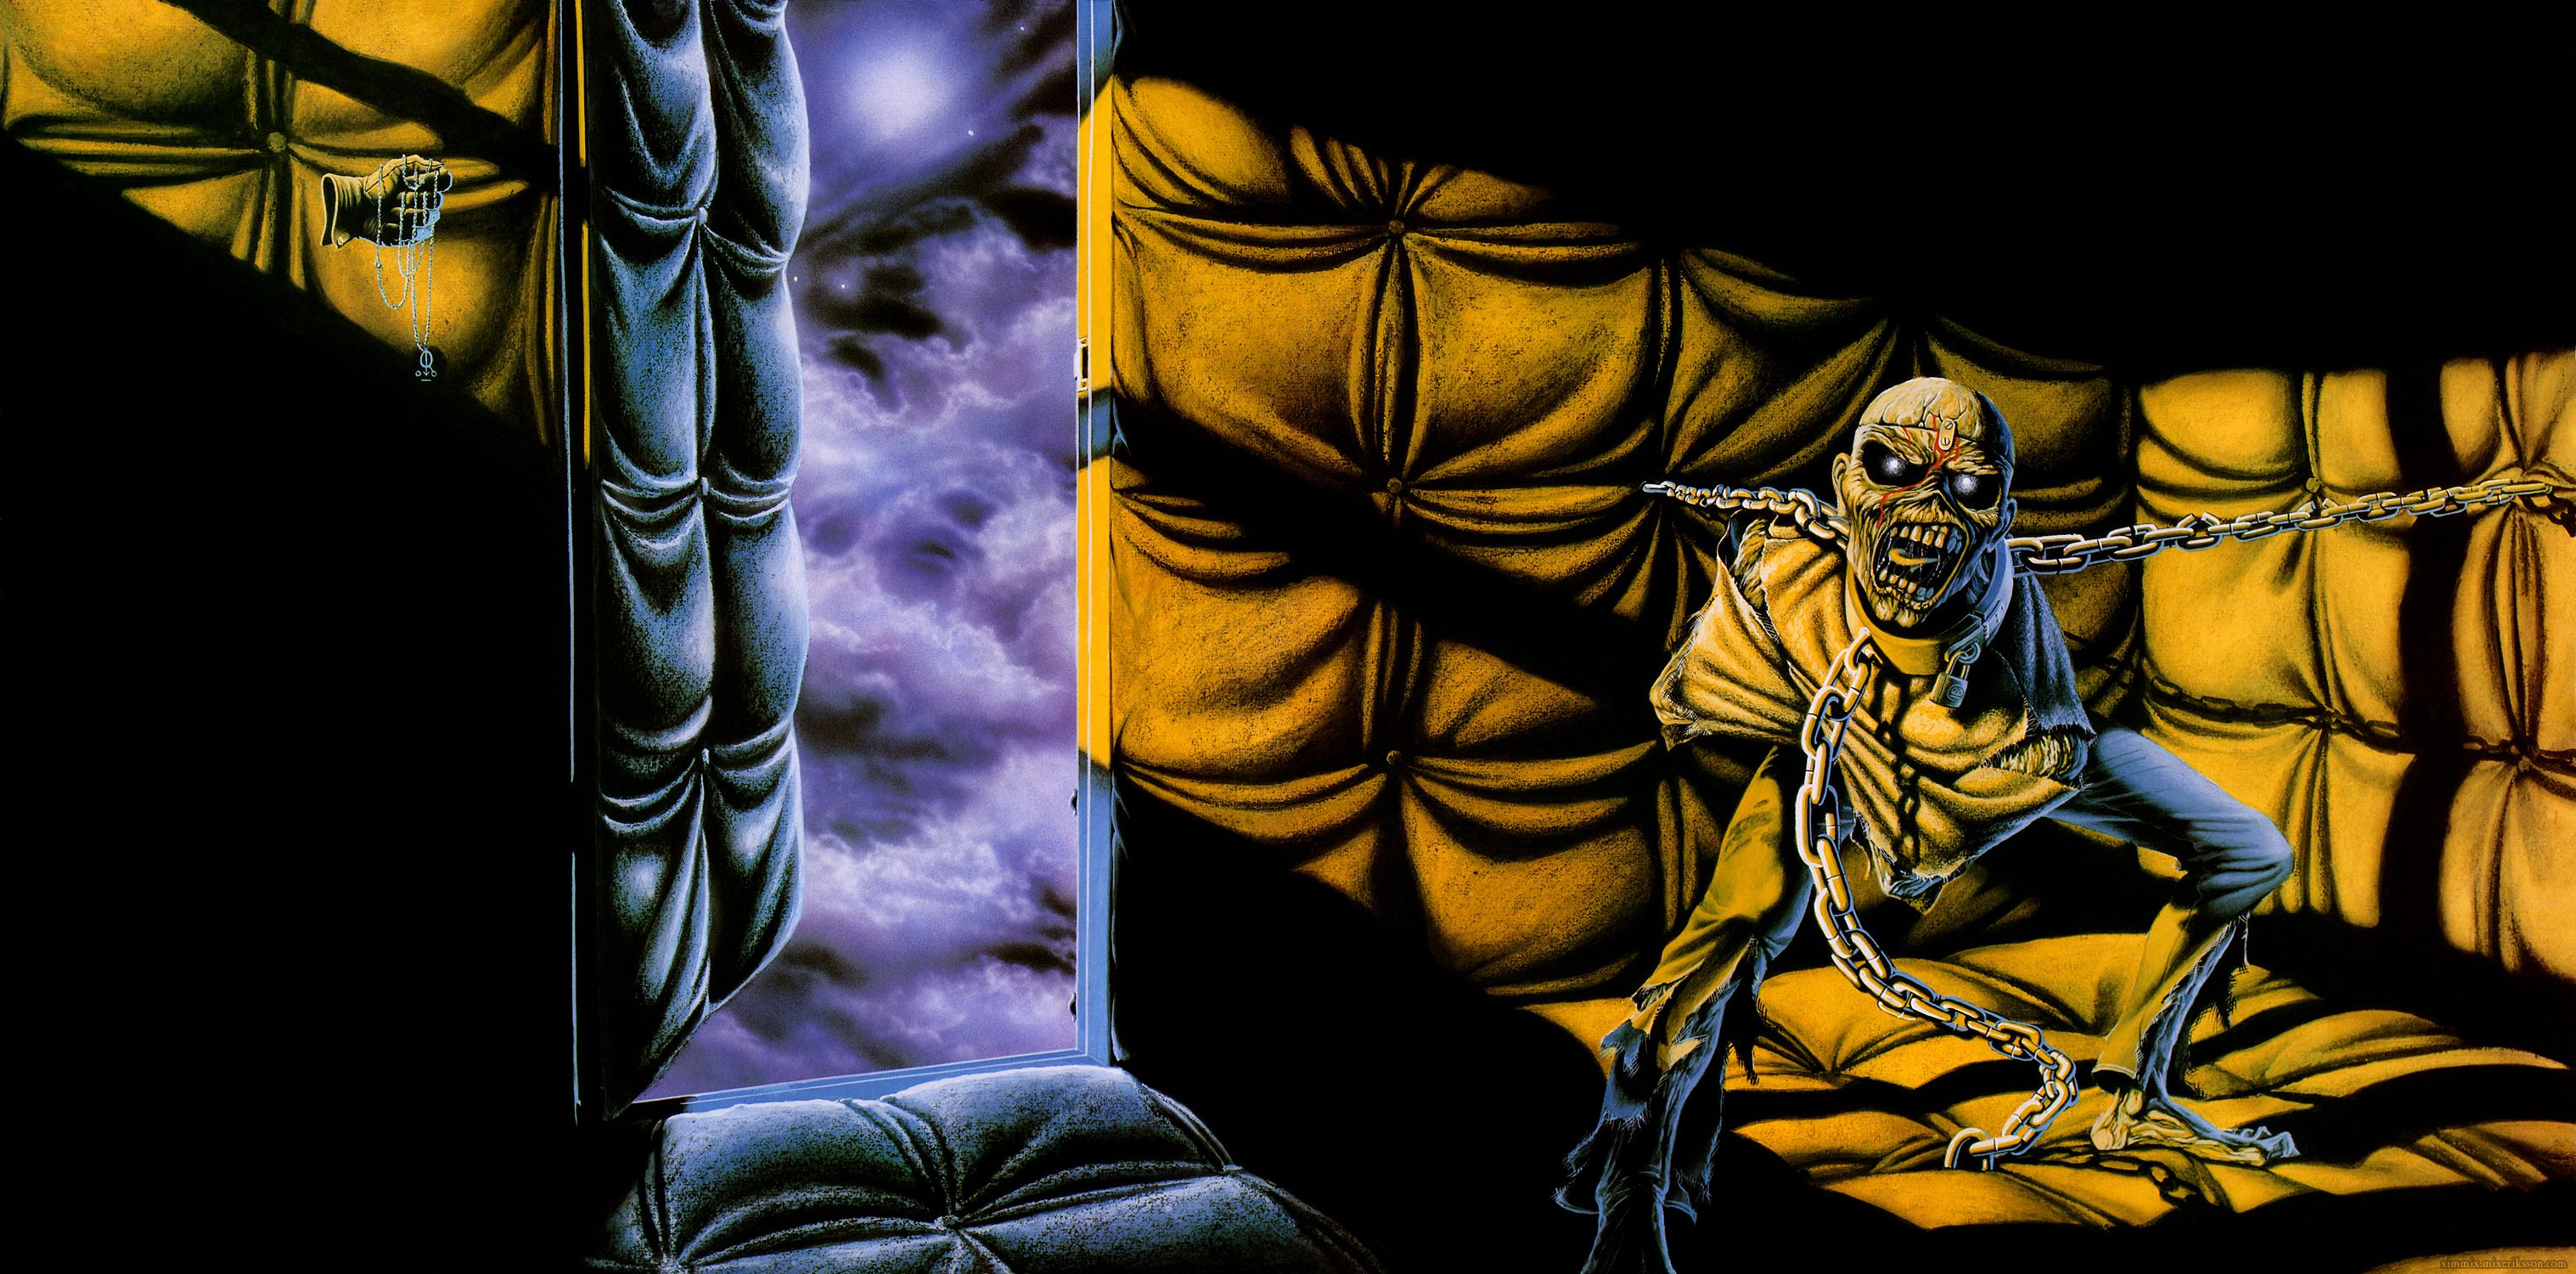 Iron Maiden The Number Of The Beast With Images Iron Maiden